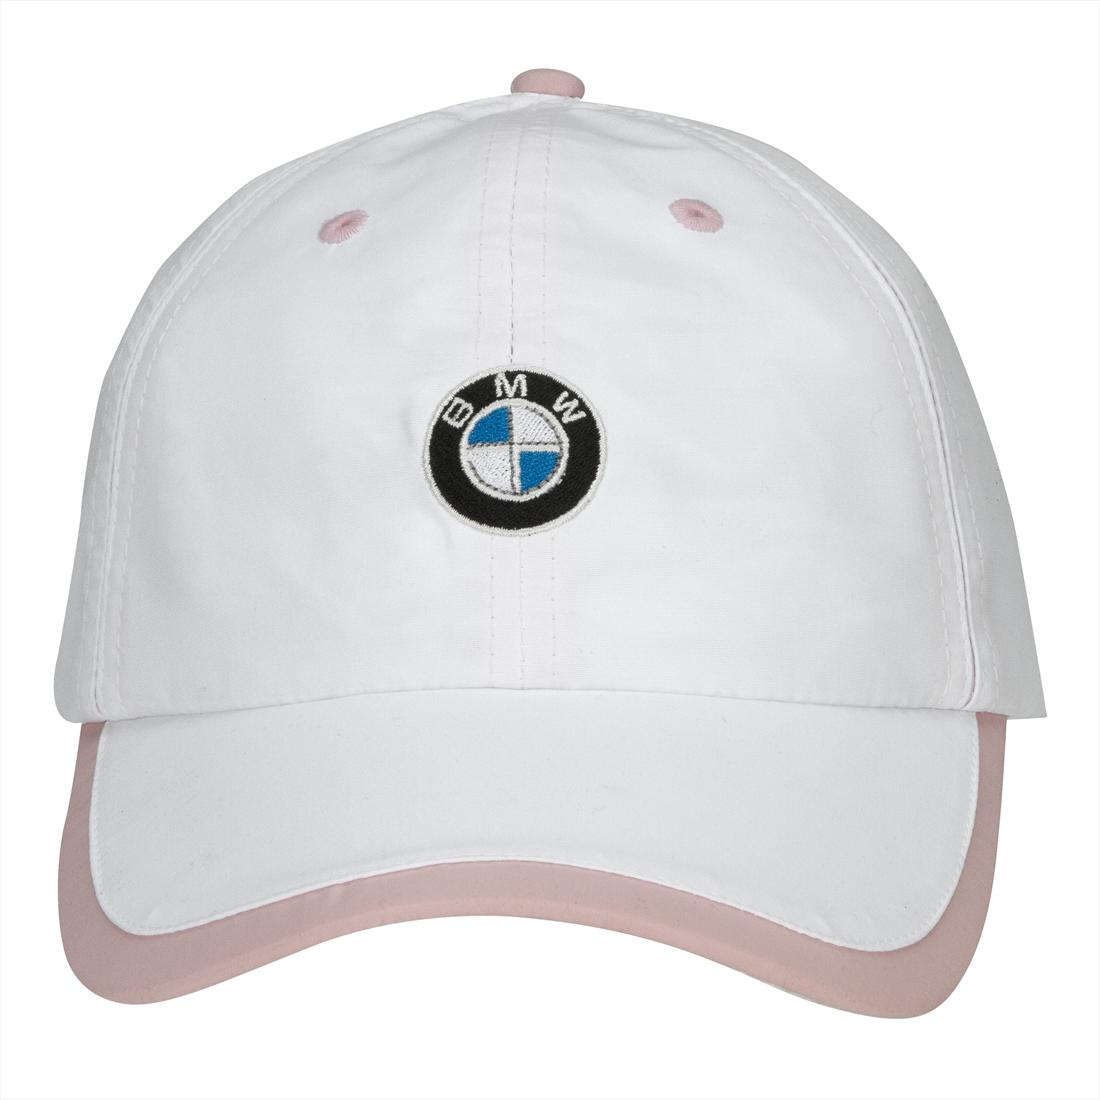 1d164c5cd21 ShopBMWUSA.com  BMW LADIES  MICROFIBER CAP